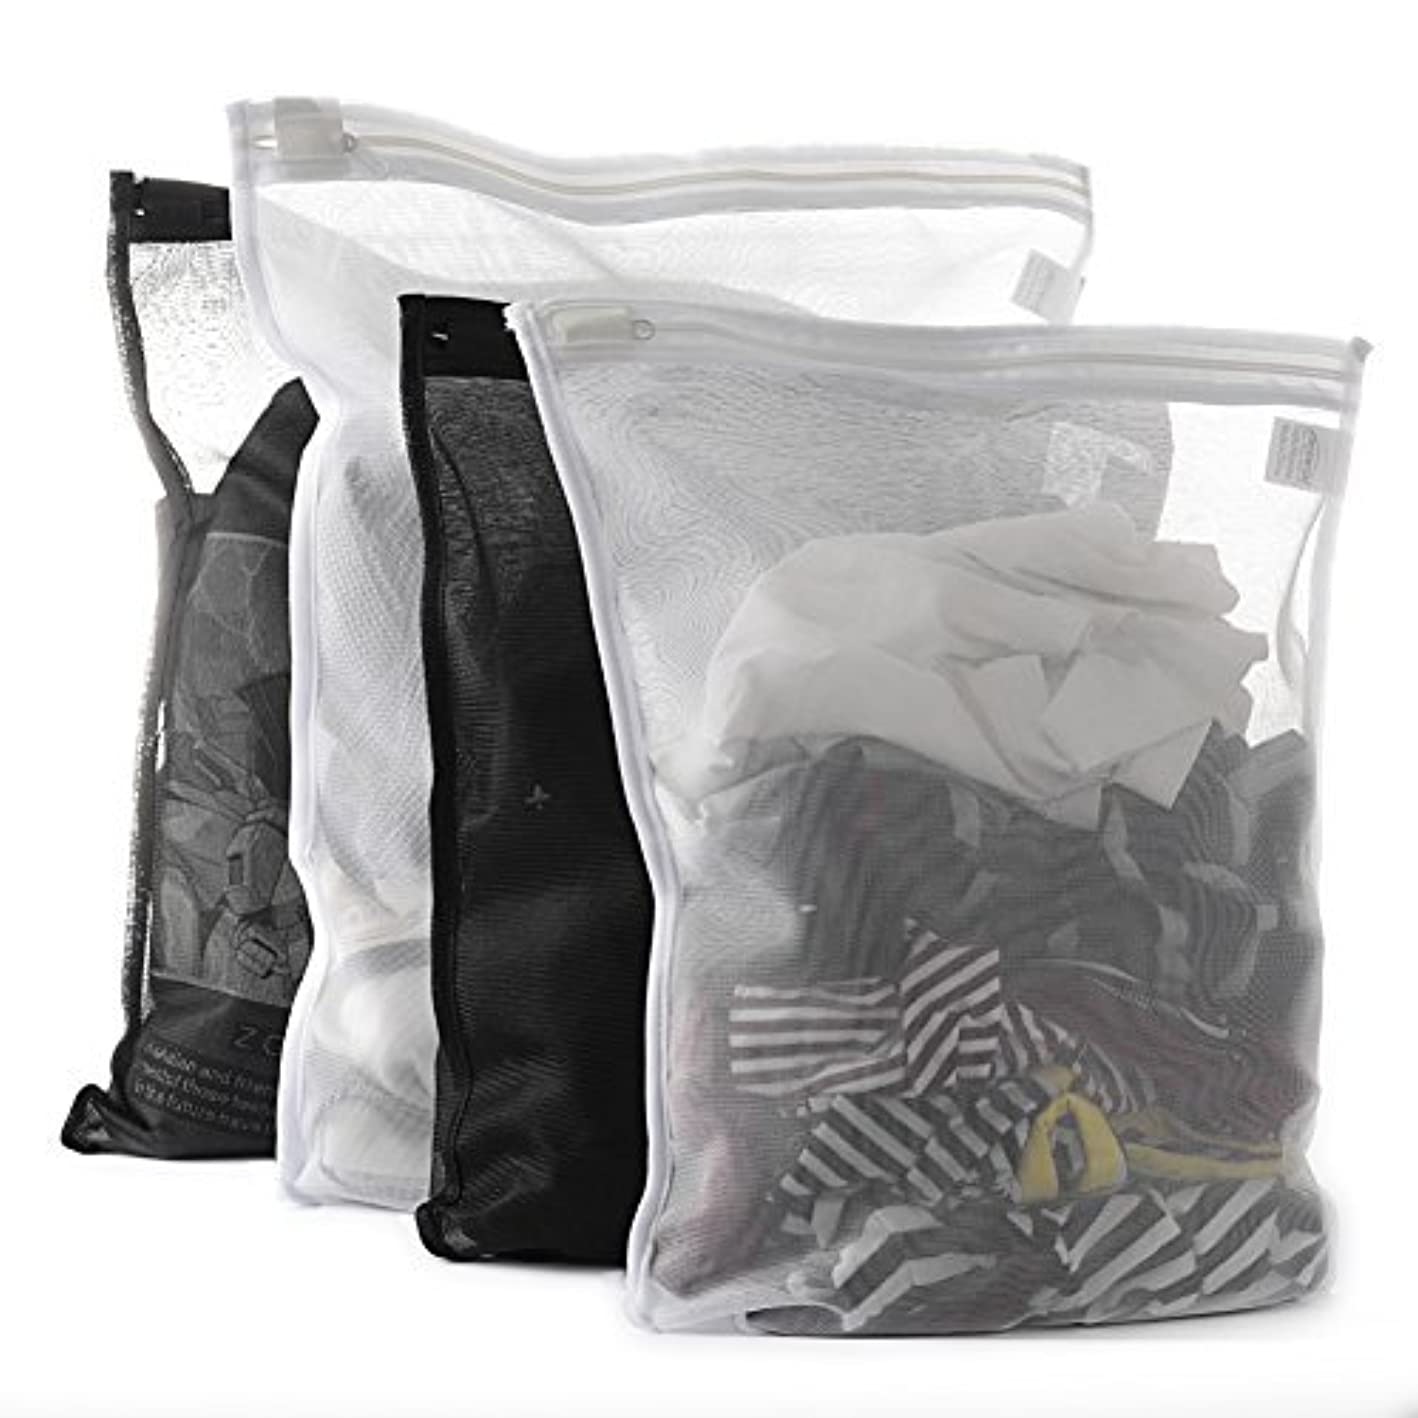 TENRAI 4 Pack (2 Large & 2 Medium) Delicates Laundry Bags, Bra Fine Mesh Wash Bag, Zippered, Protect Best Clothes in The Washer (2 Black & 2 White, Set of 4)